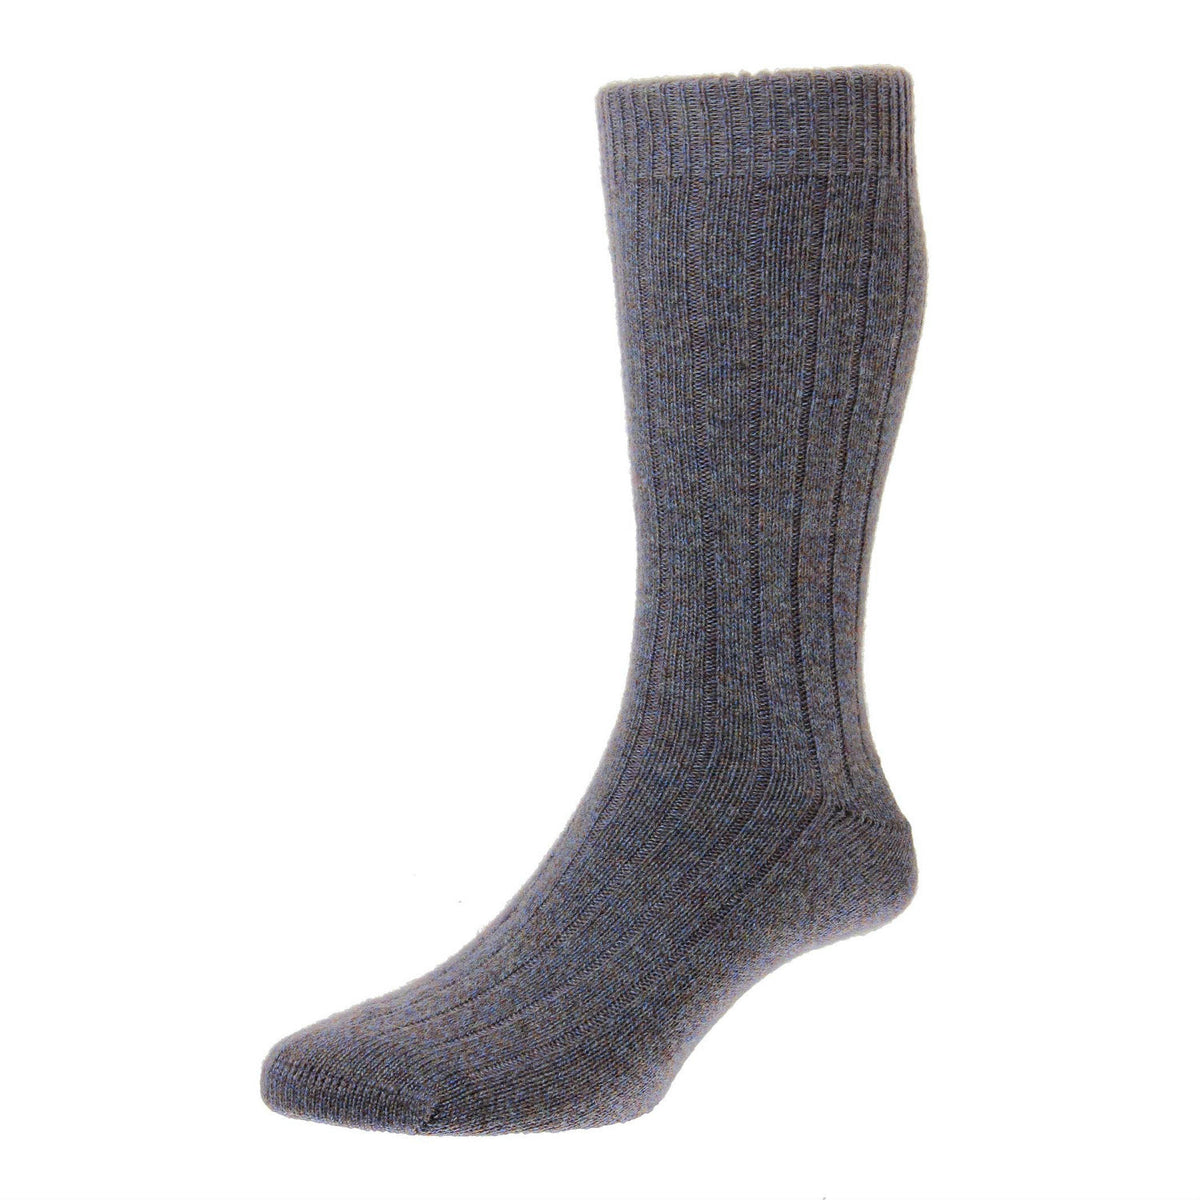 Heather Marl | Mens Cashmere Socks | Made in England | Calf Length Sock | buy now at The Cashmere Choice London